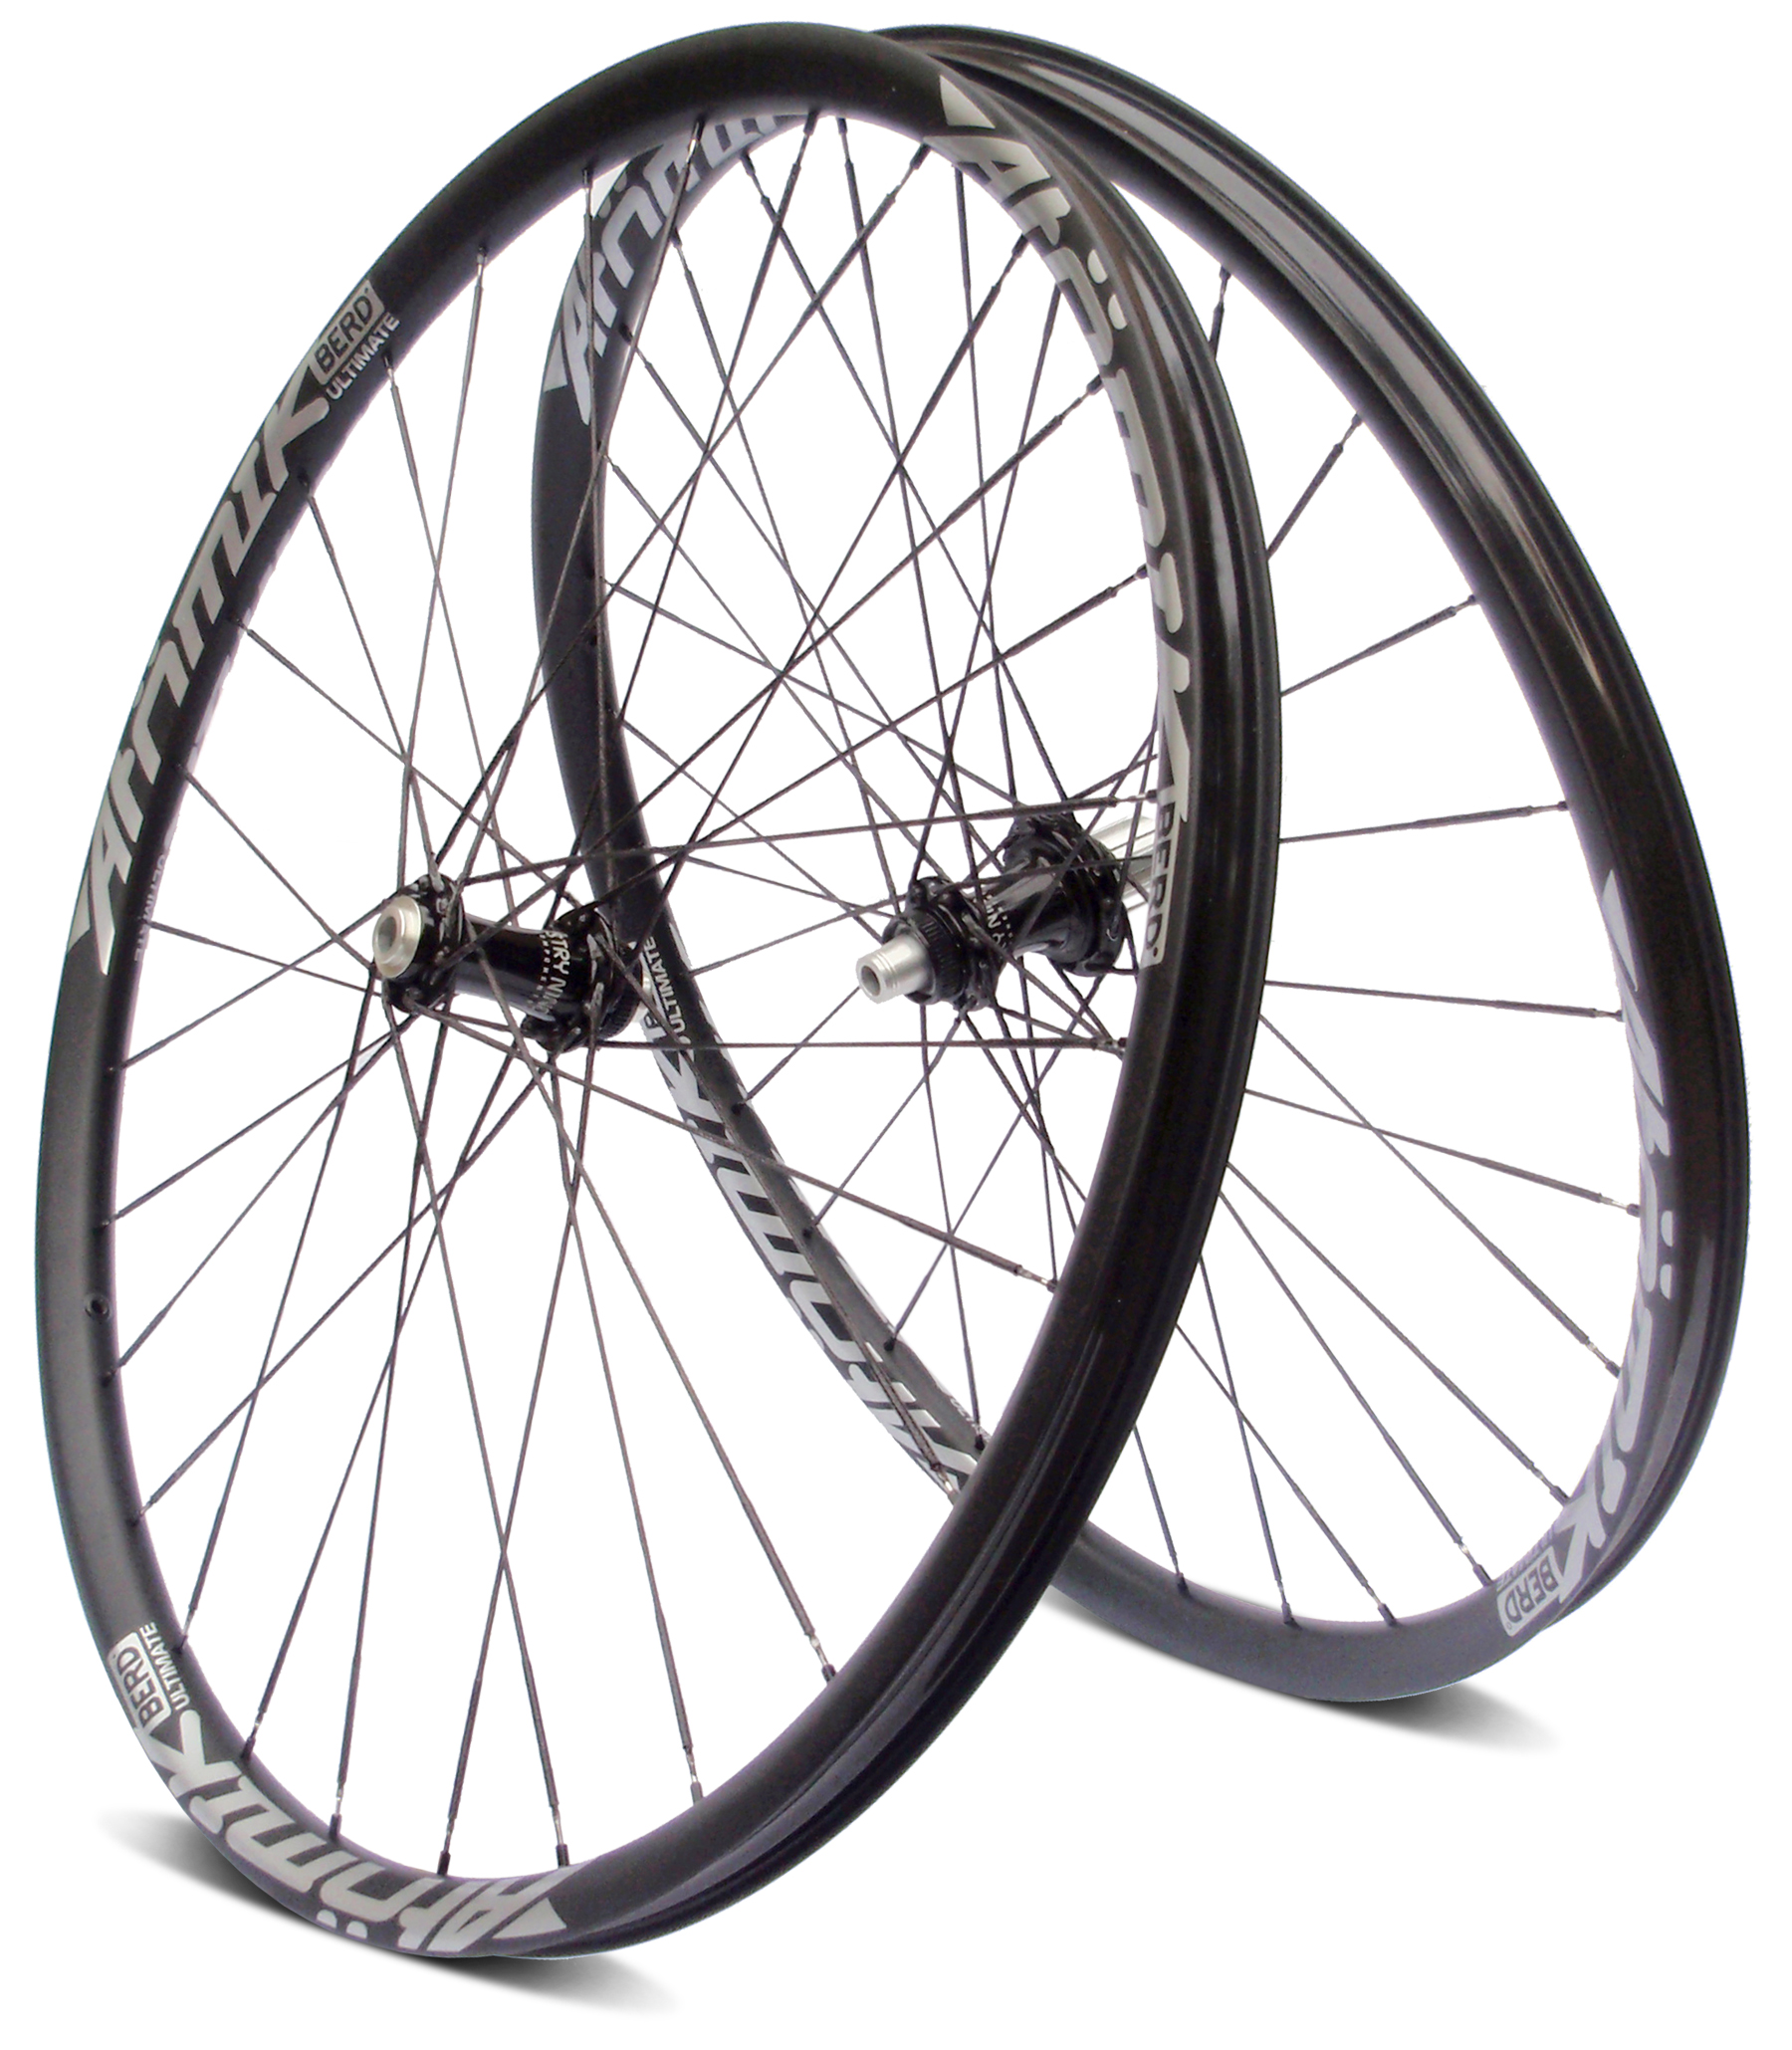 """Atomik x Berd Carbon Ultimate Wheelset brings new color to """"world's lightest spokes"""""""